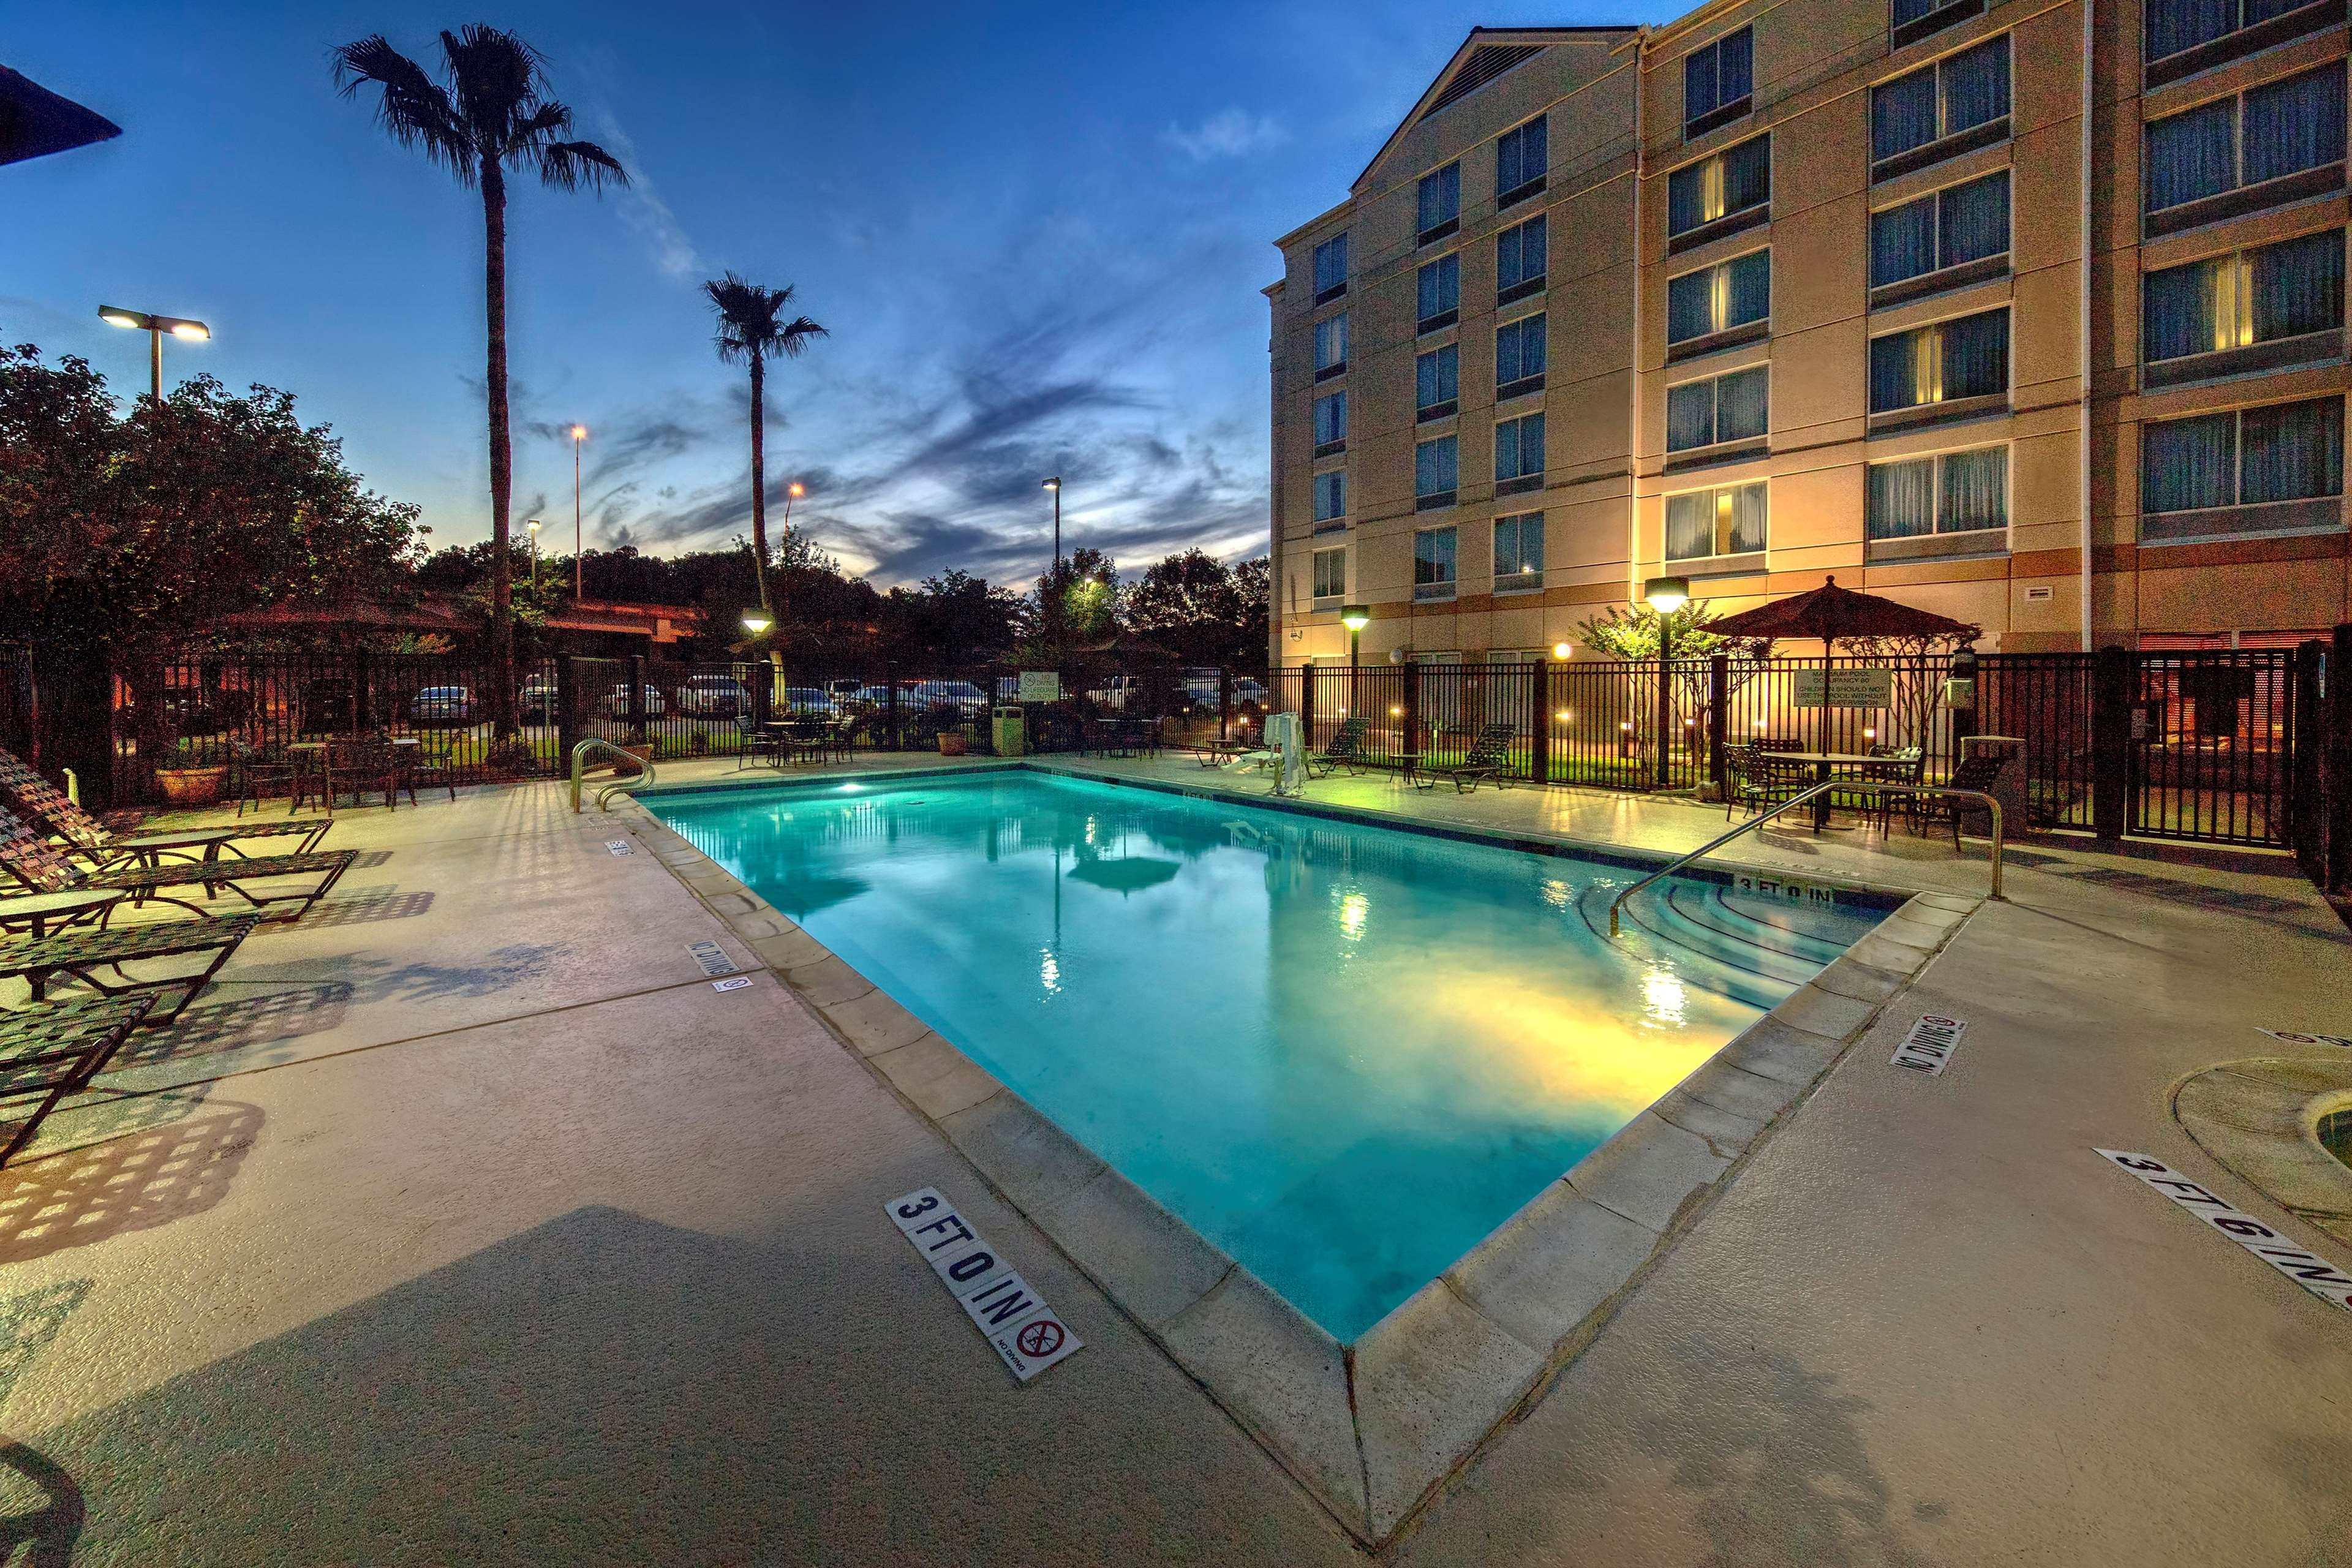 Hilton Garden Inn Houston/Bush Intercontinental Airport image 24